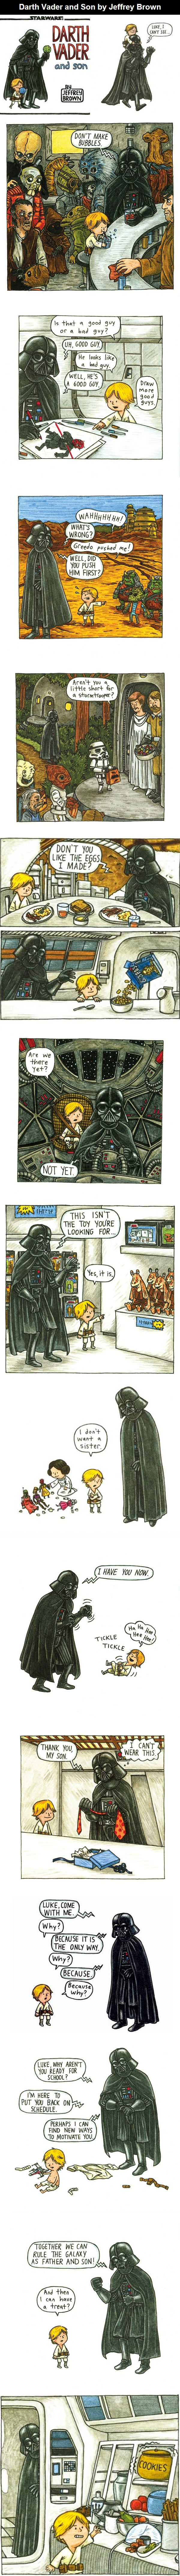 Darth Vader and Son. Love the 'I don't want a sister'